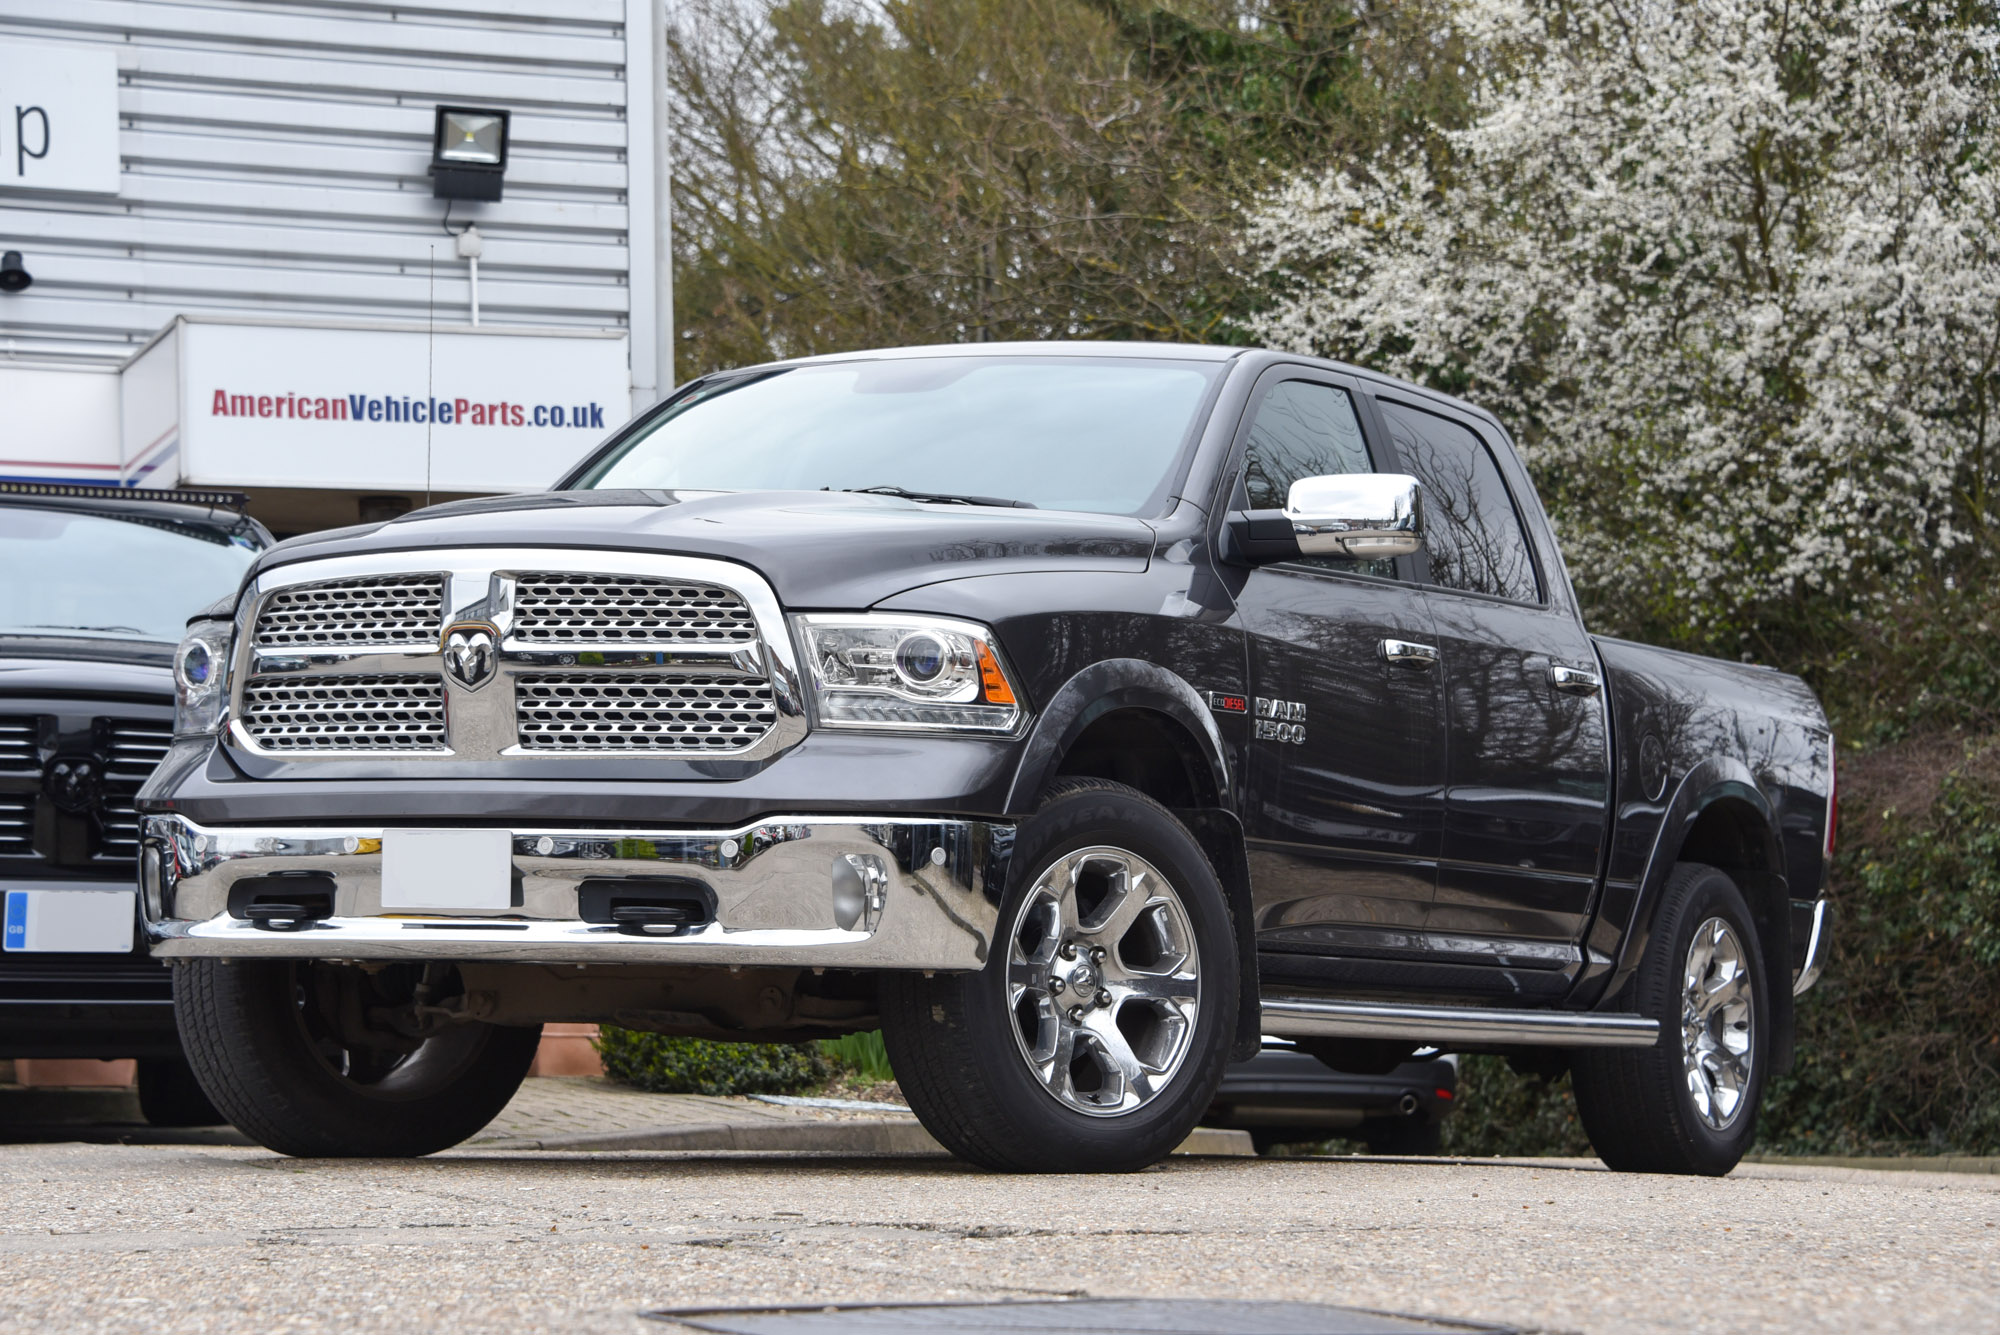 2015 65 dodge ram eco diesel laramie crew no vat david boatwright partnership dodge ram. Black Bedroom Furniture Sets. Home Design Ideas